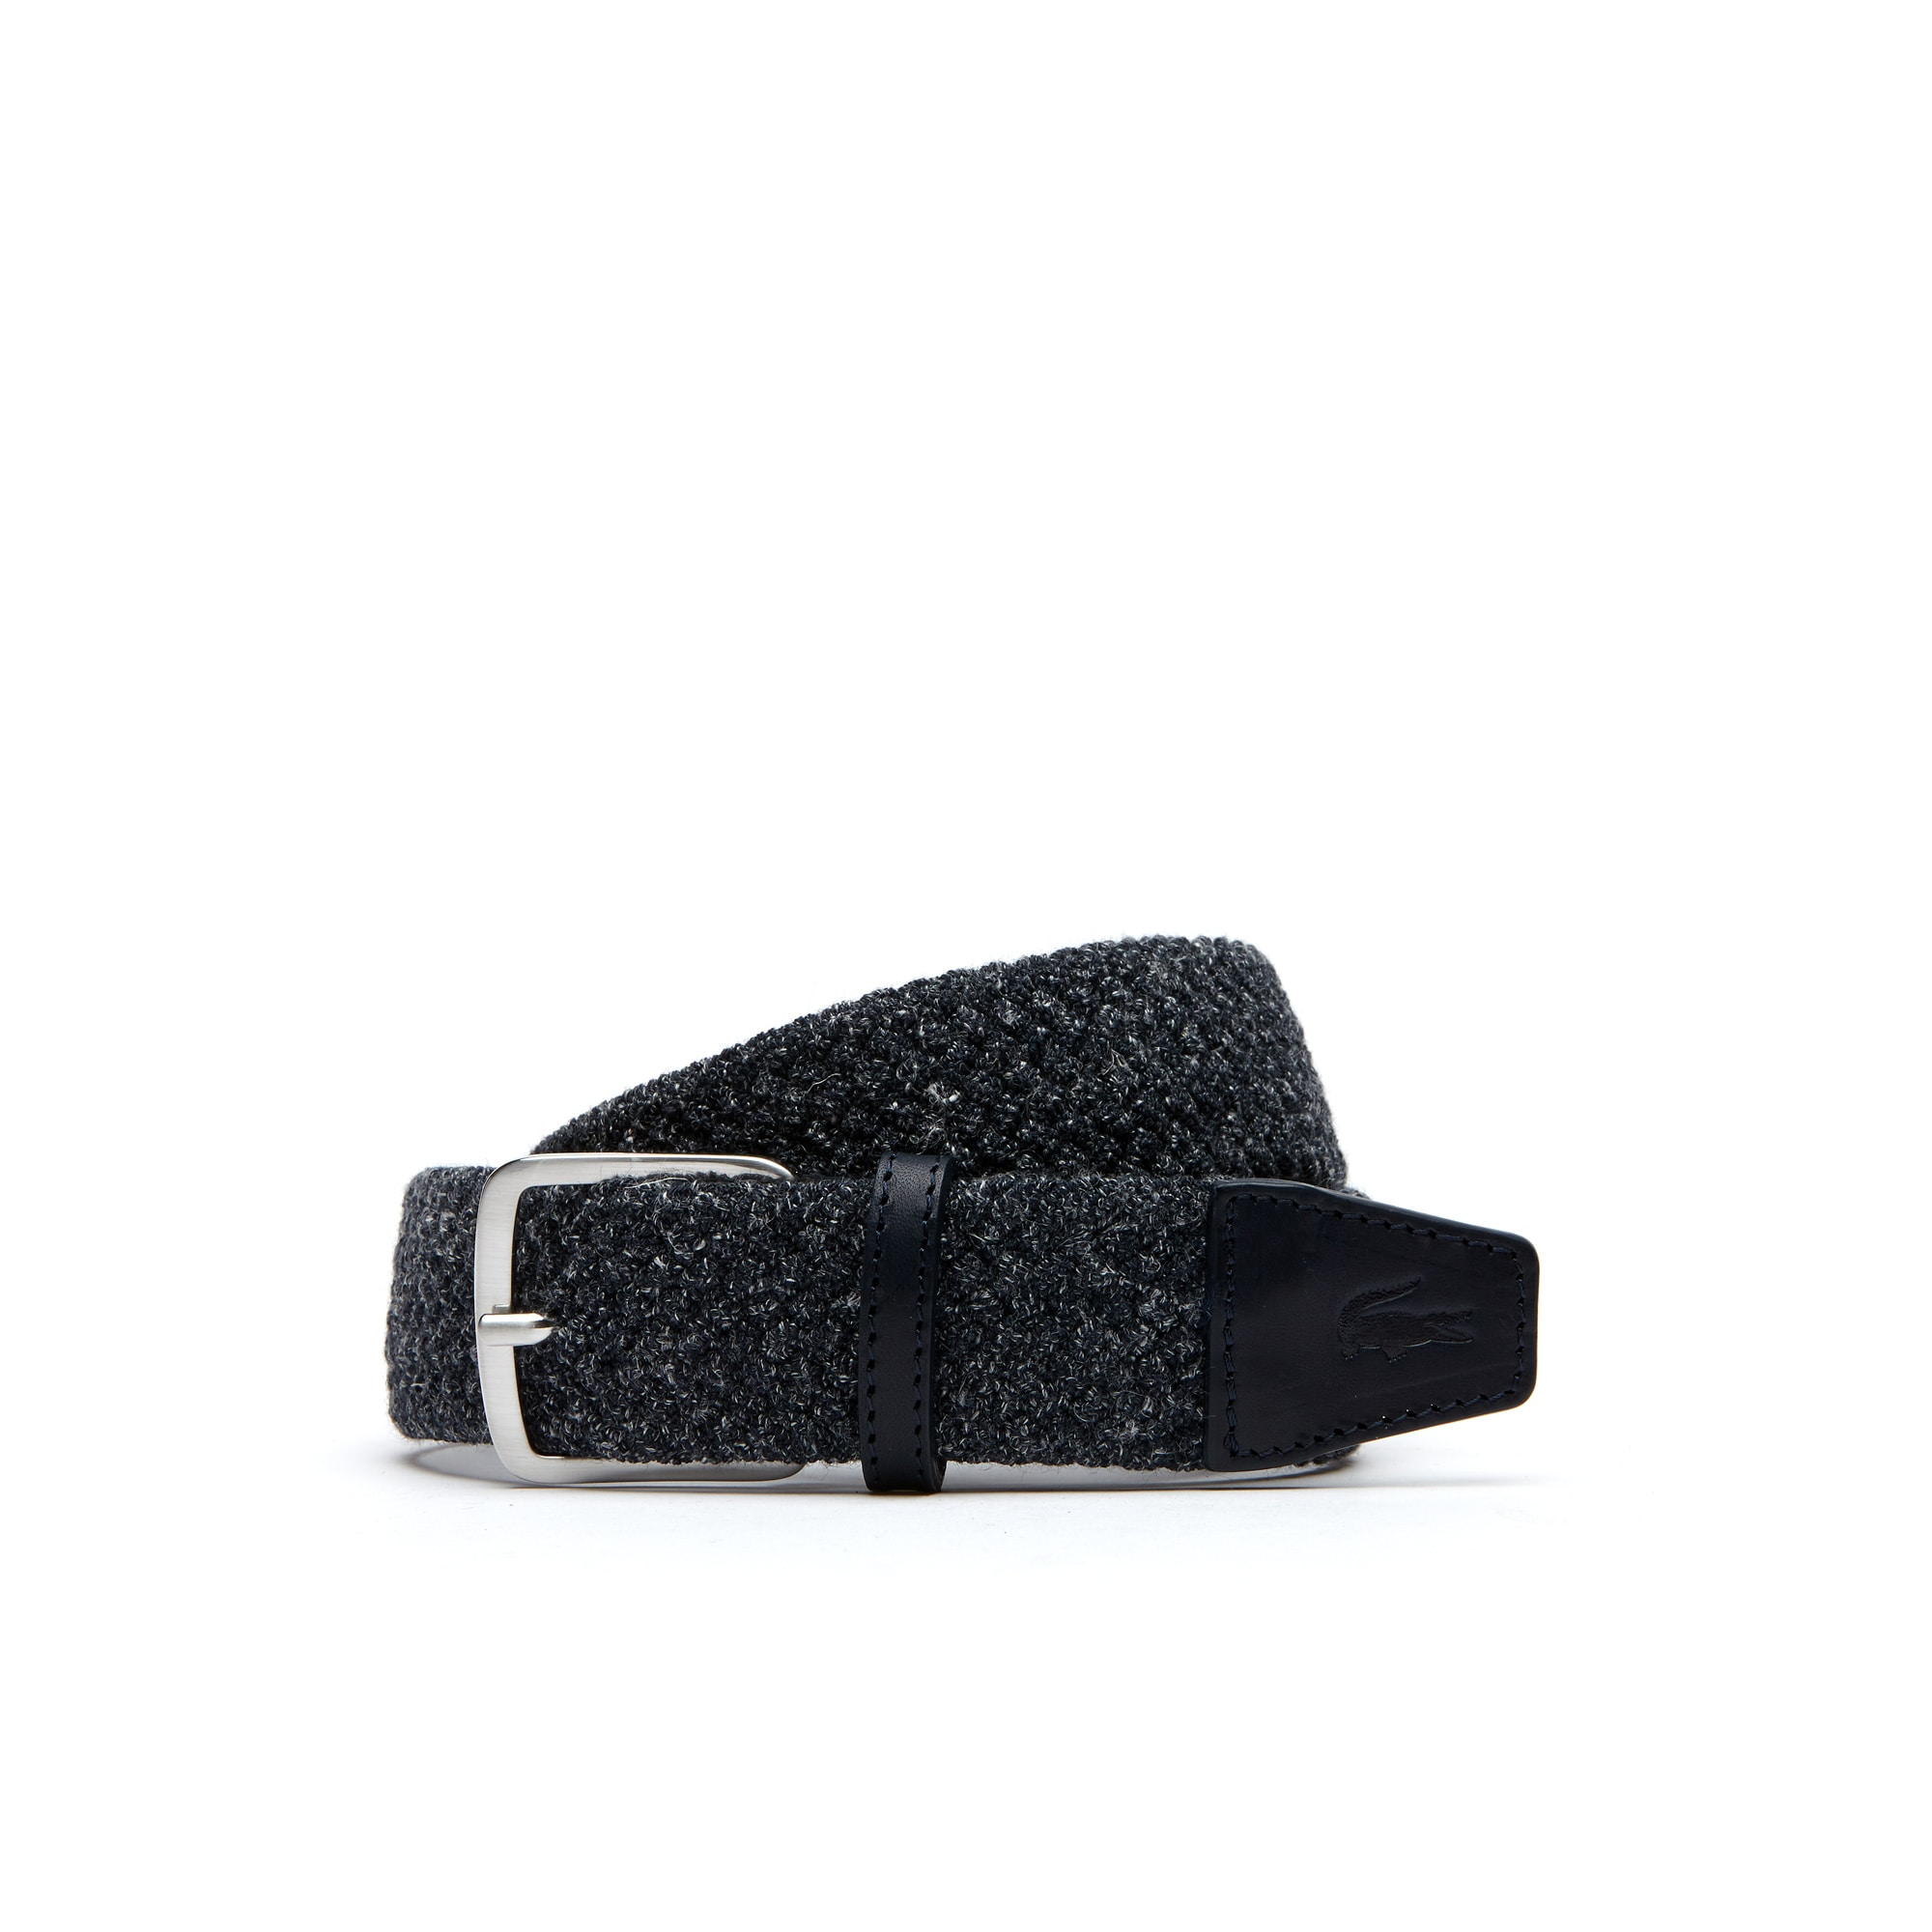 Men's Woven Linen And Polyester Belt With Tongue Buckle